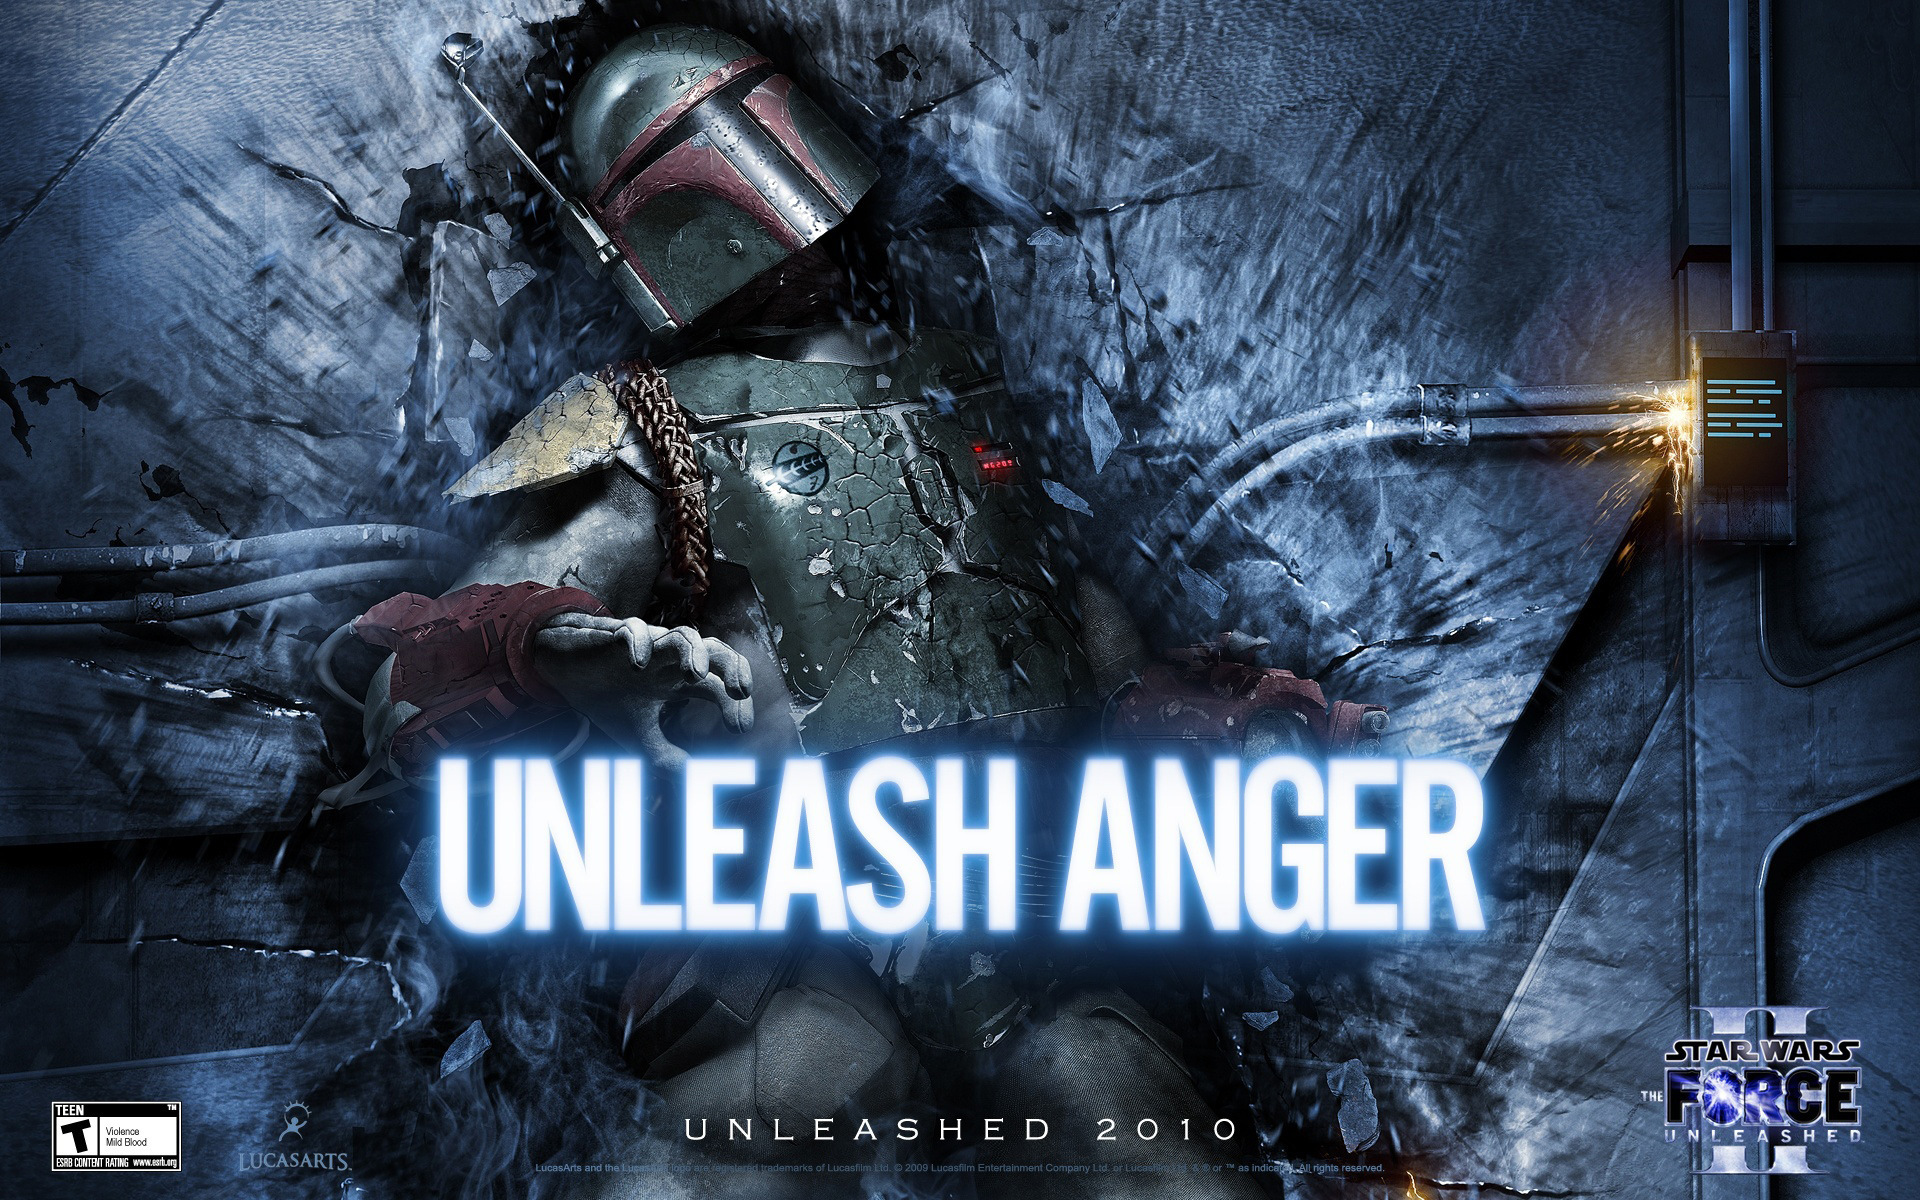 star-wars-the-force-unleashed-ii-unleash-anger-1920x1200.jpg